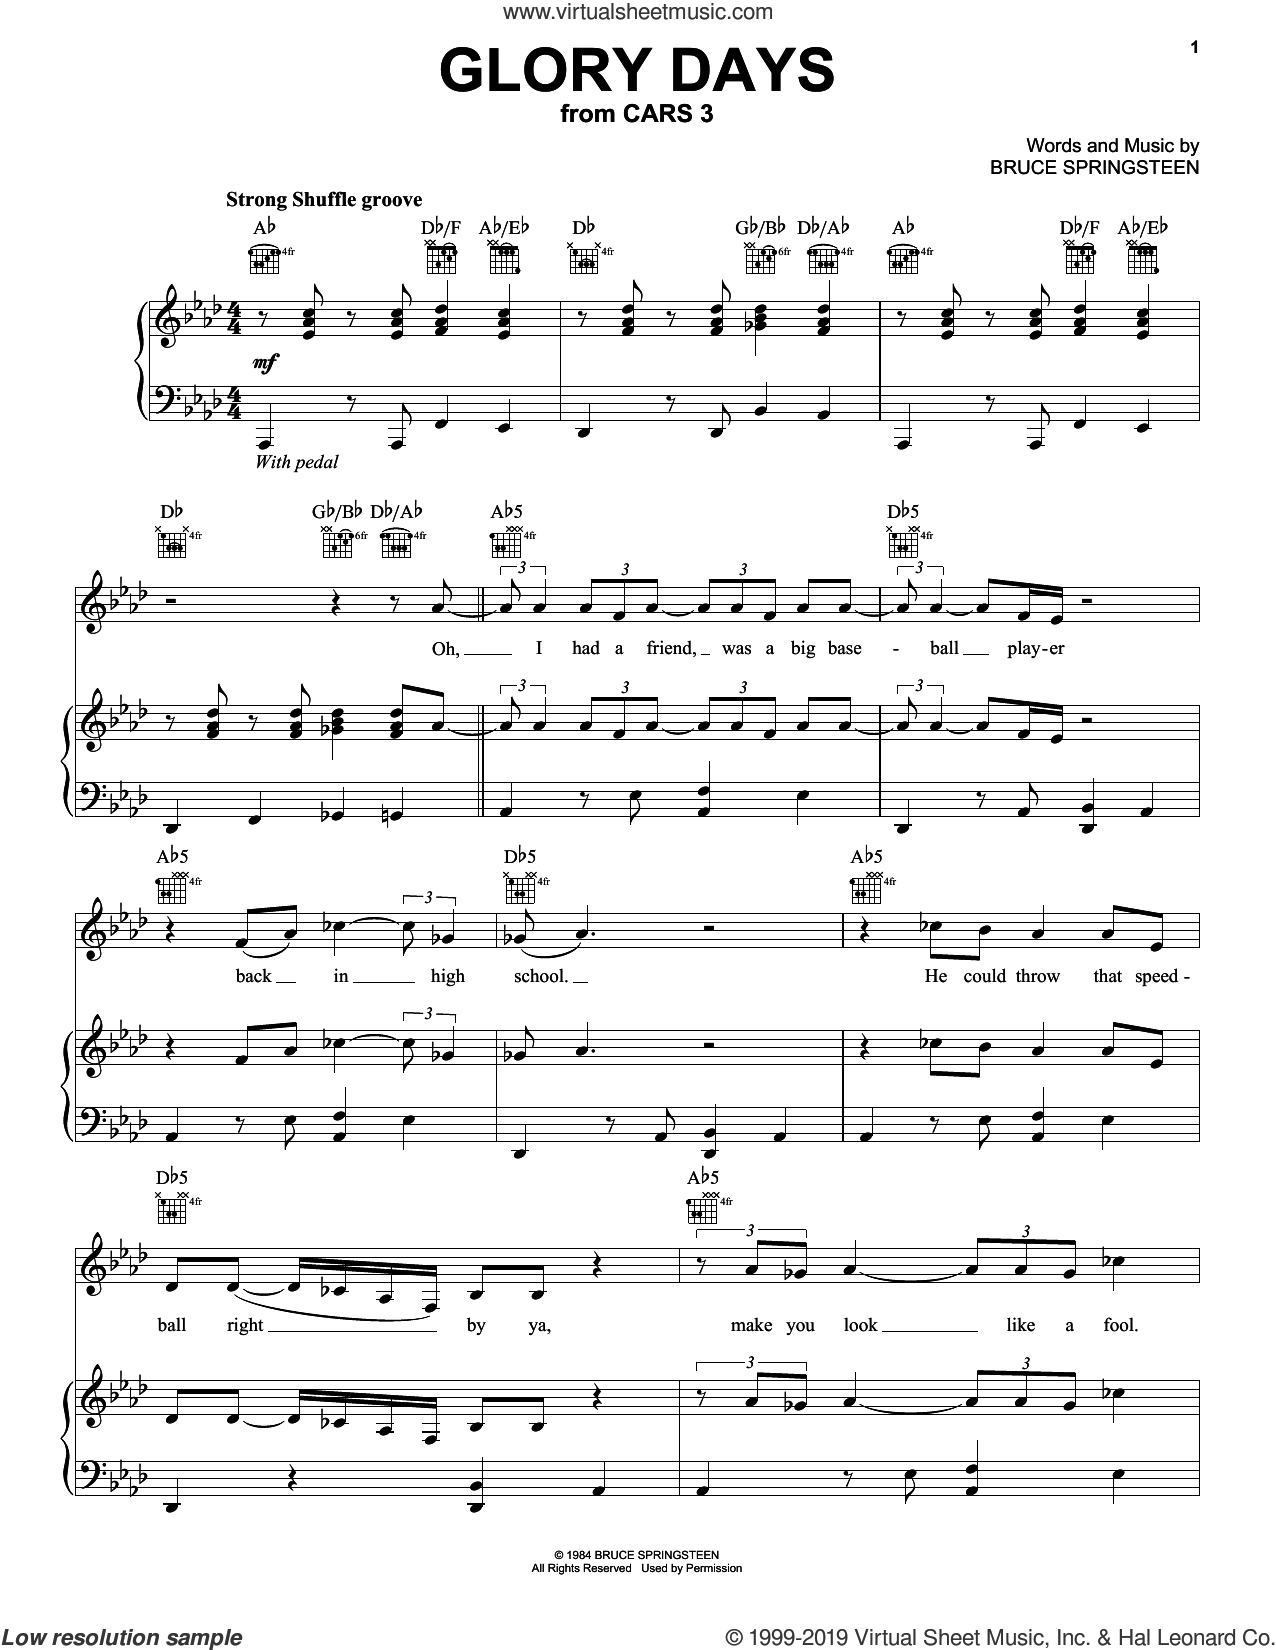 Glory Days sheet music for voice, piano or guitar by Bruce Springsteen, intermediate skill level